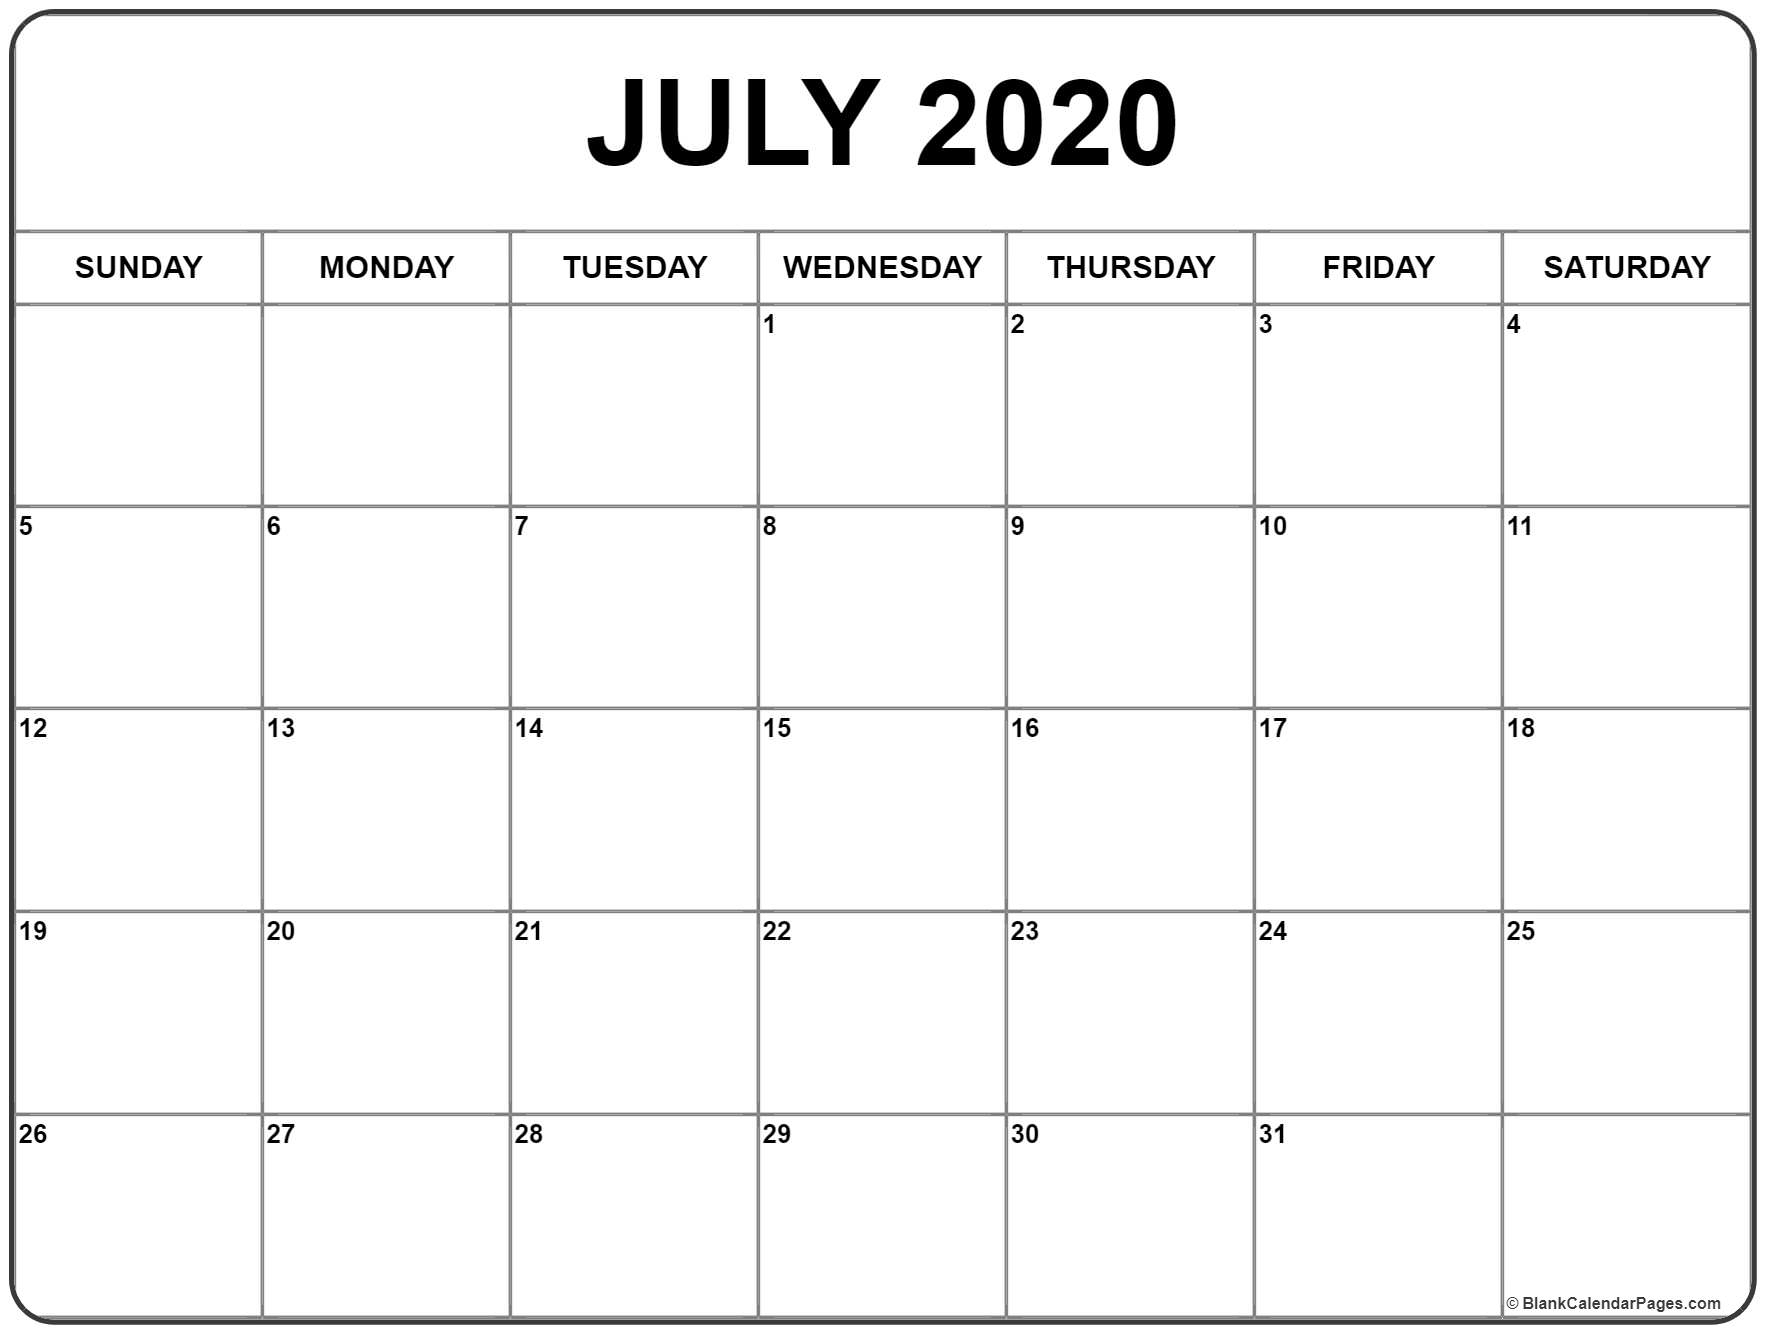 Large Print 2020 Calendar With Holidays – Get Your Calendar